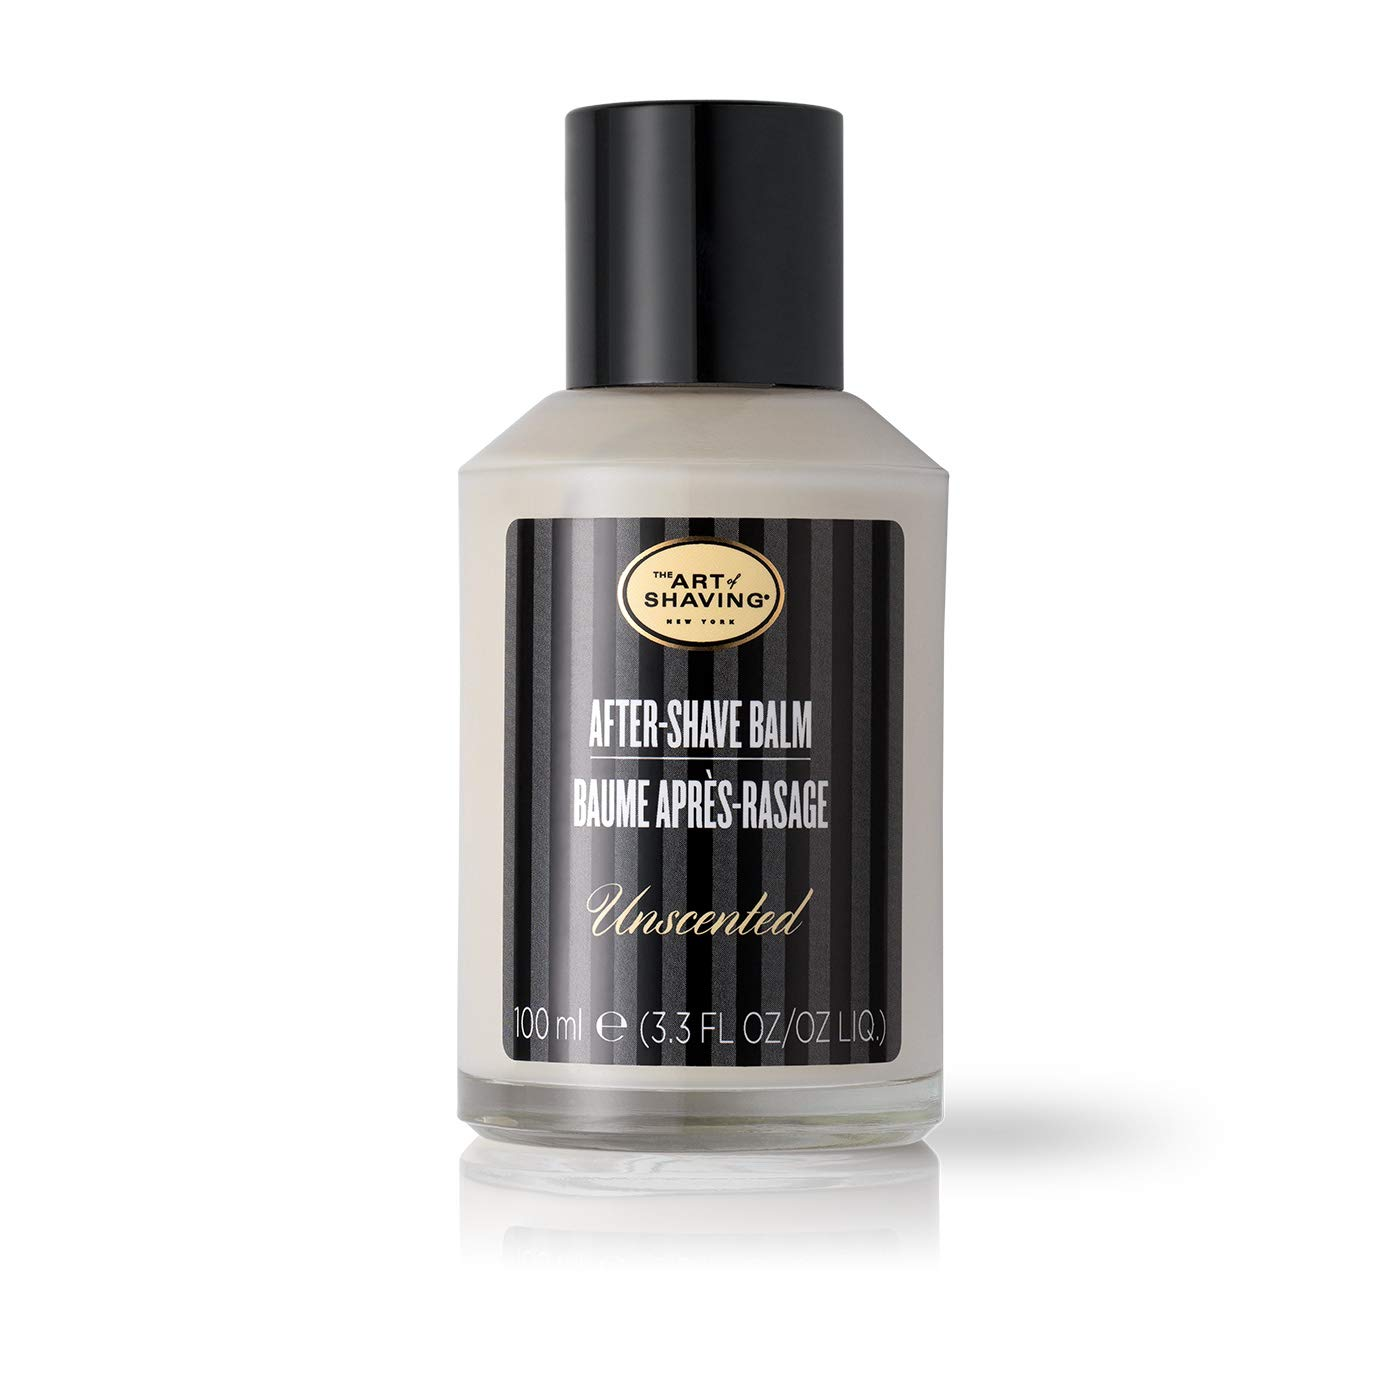 The Art of Shaving Unscented Aftershave Balm for men